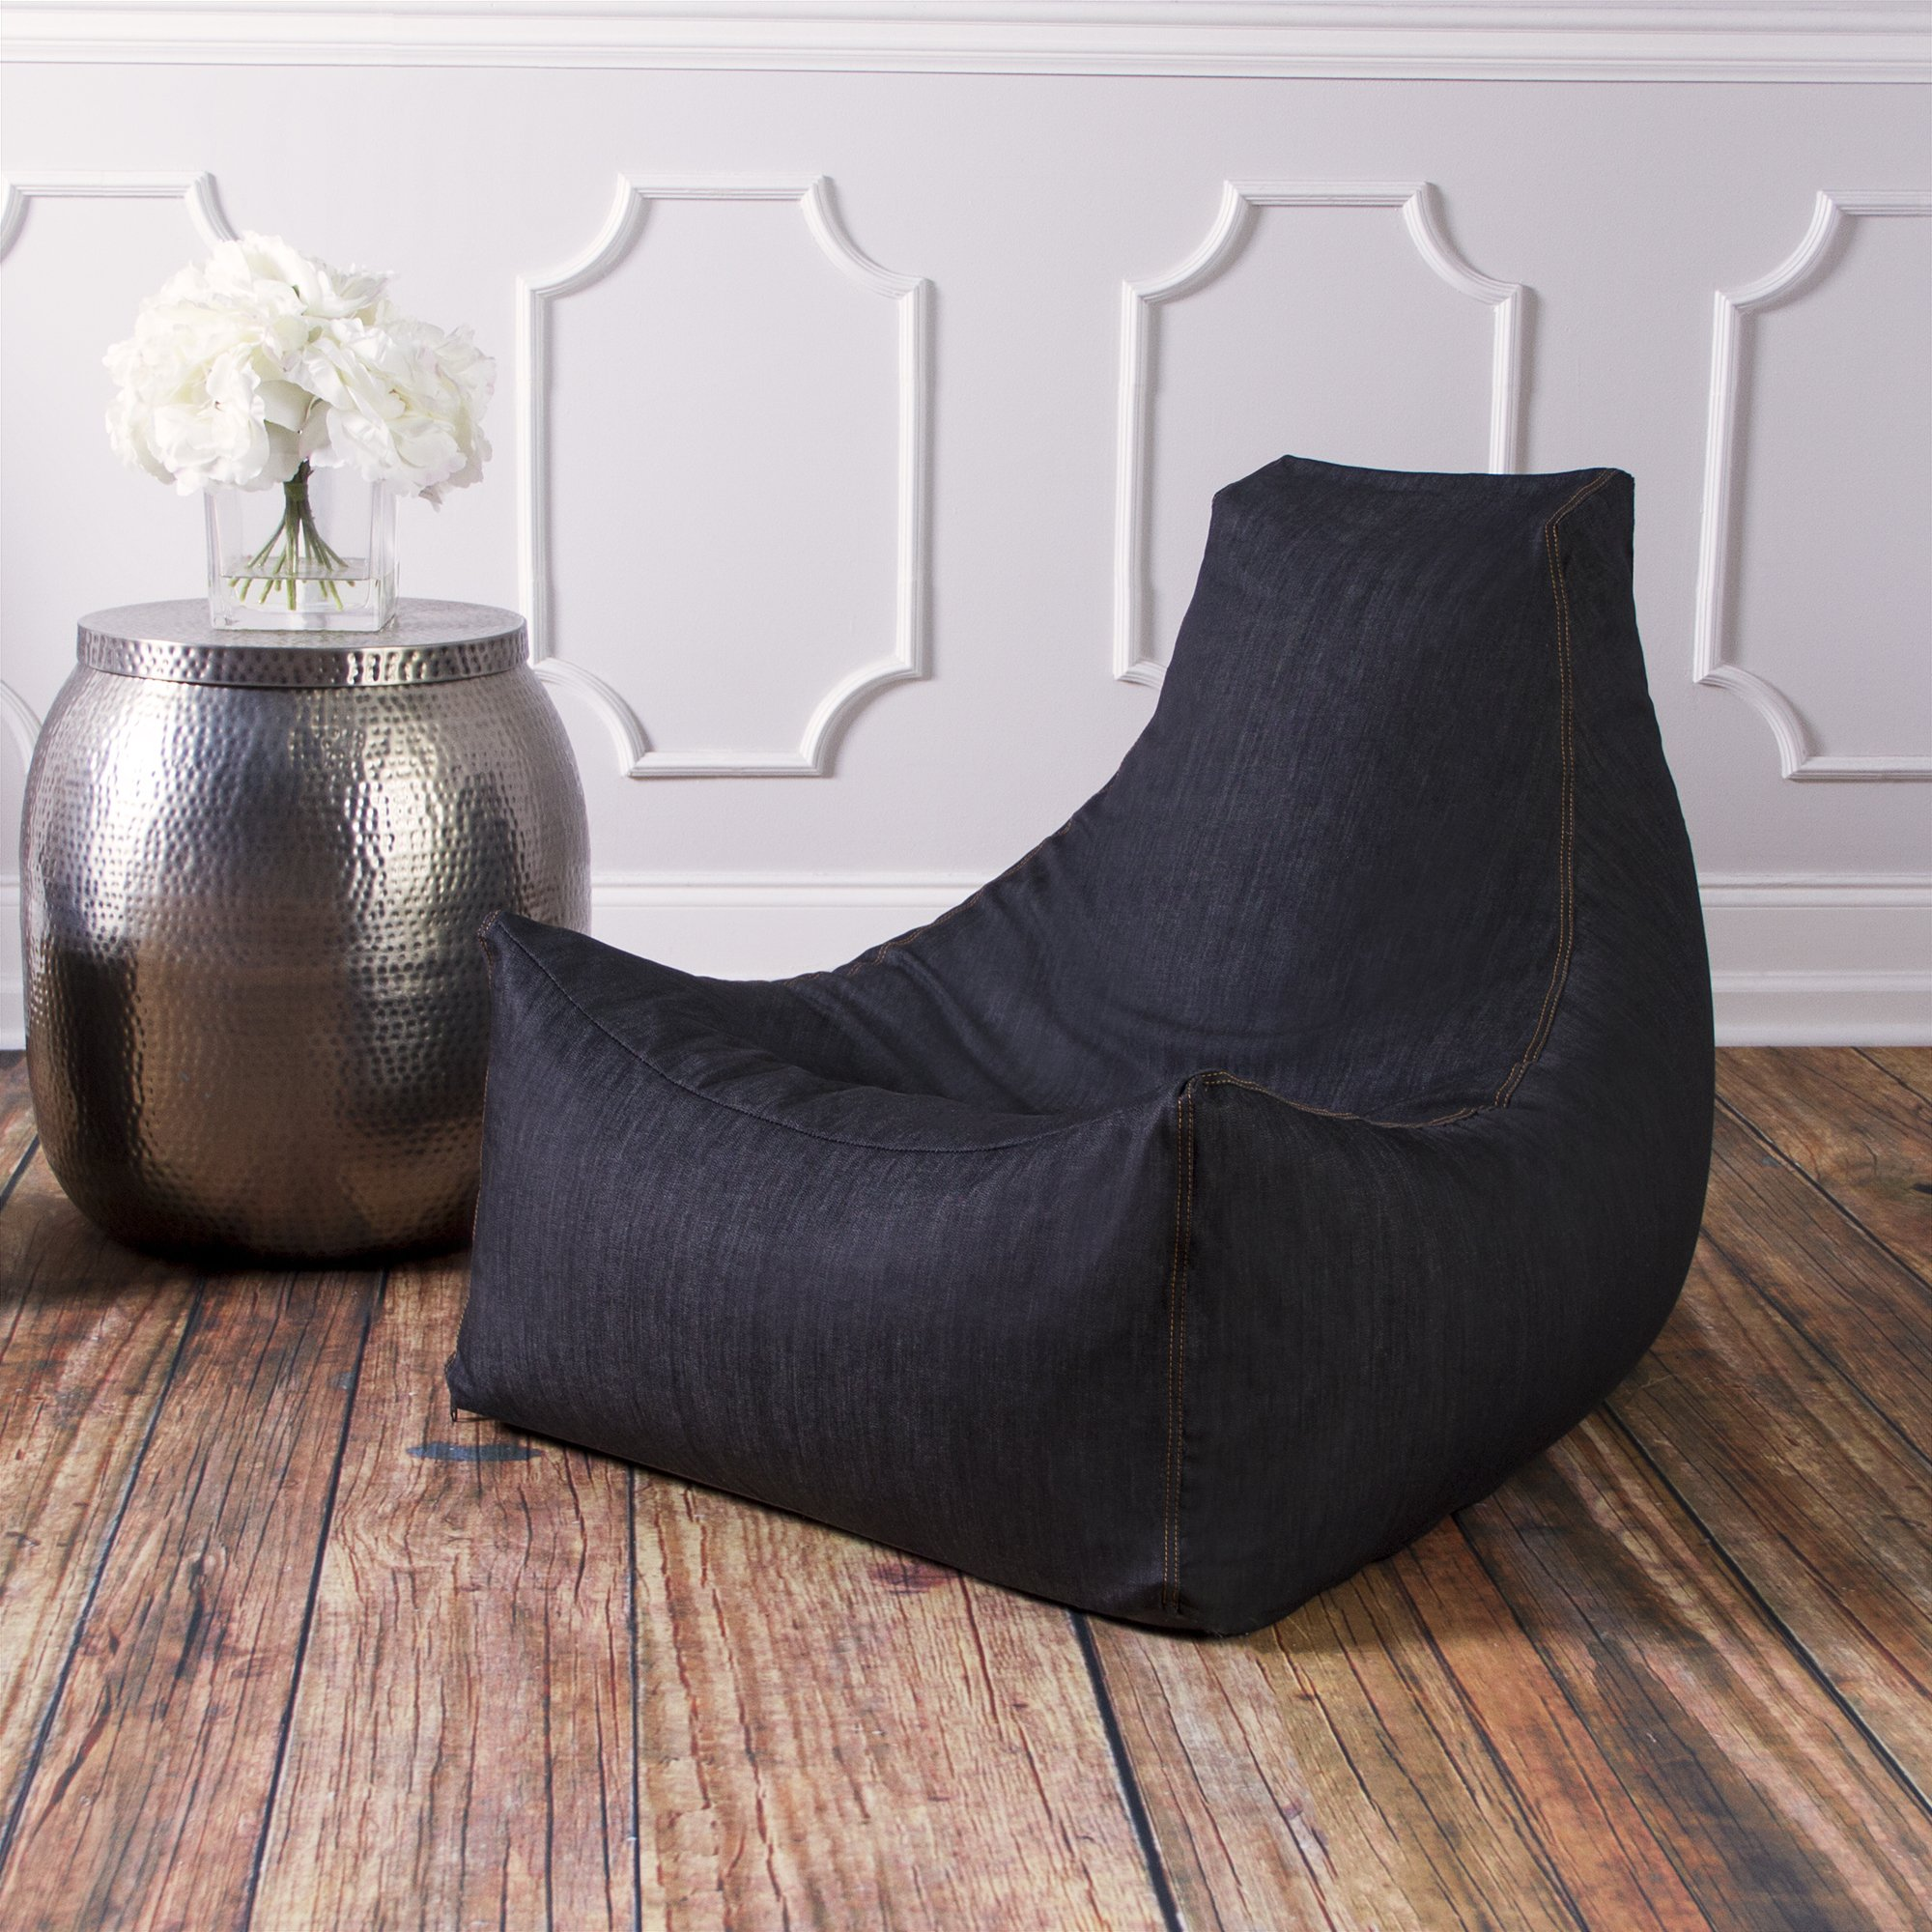 Jaxx Juniper Bean Bag Chair